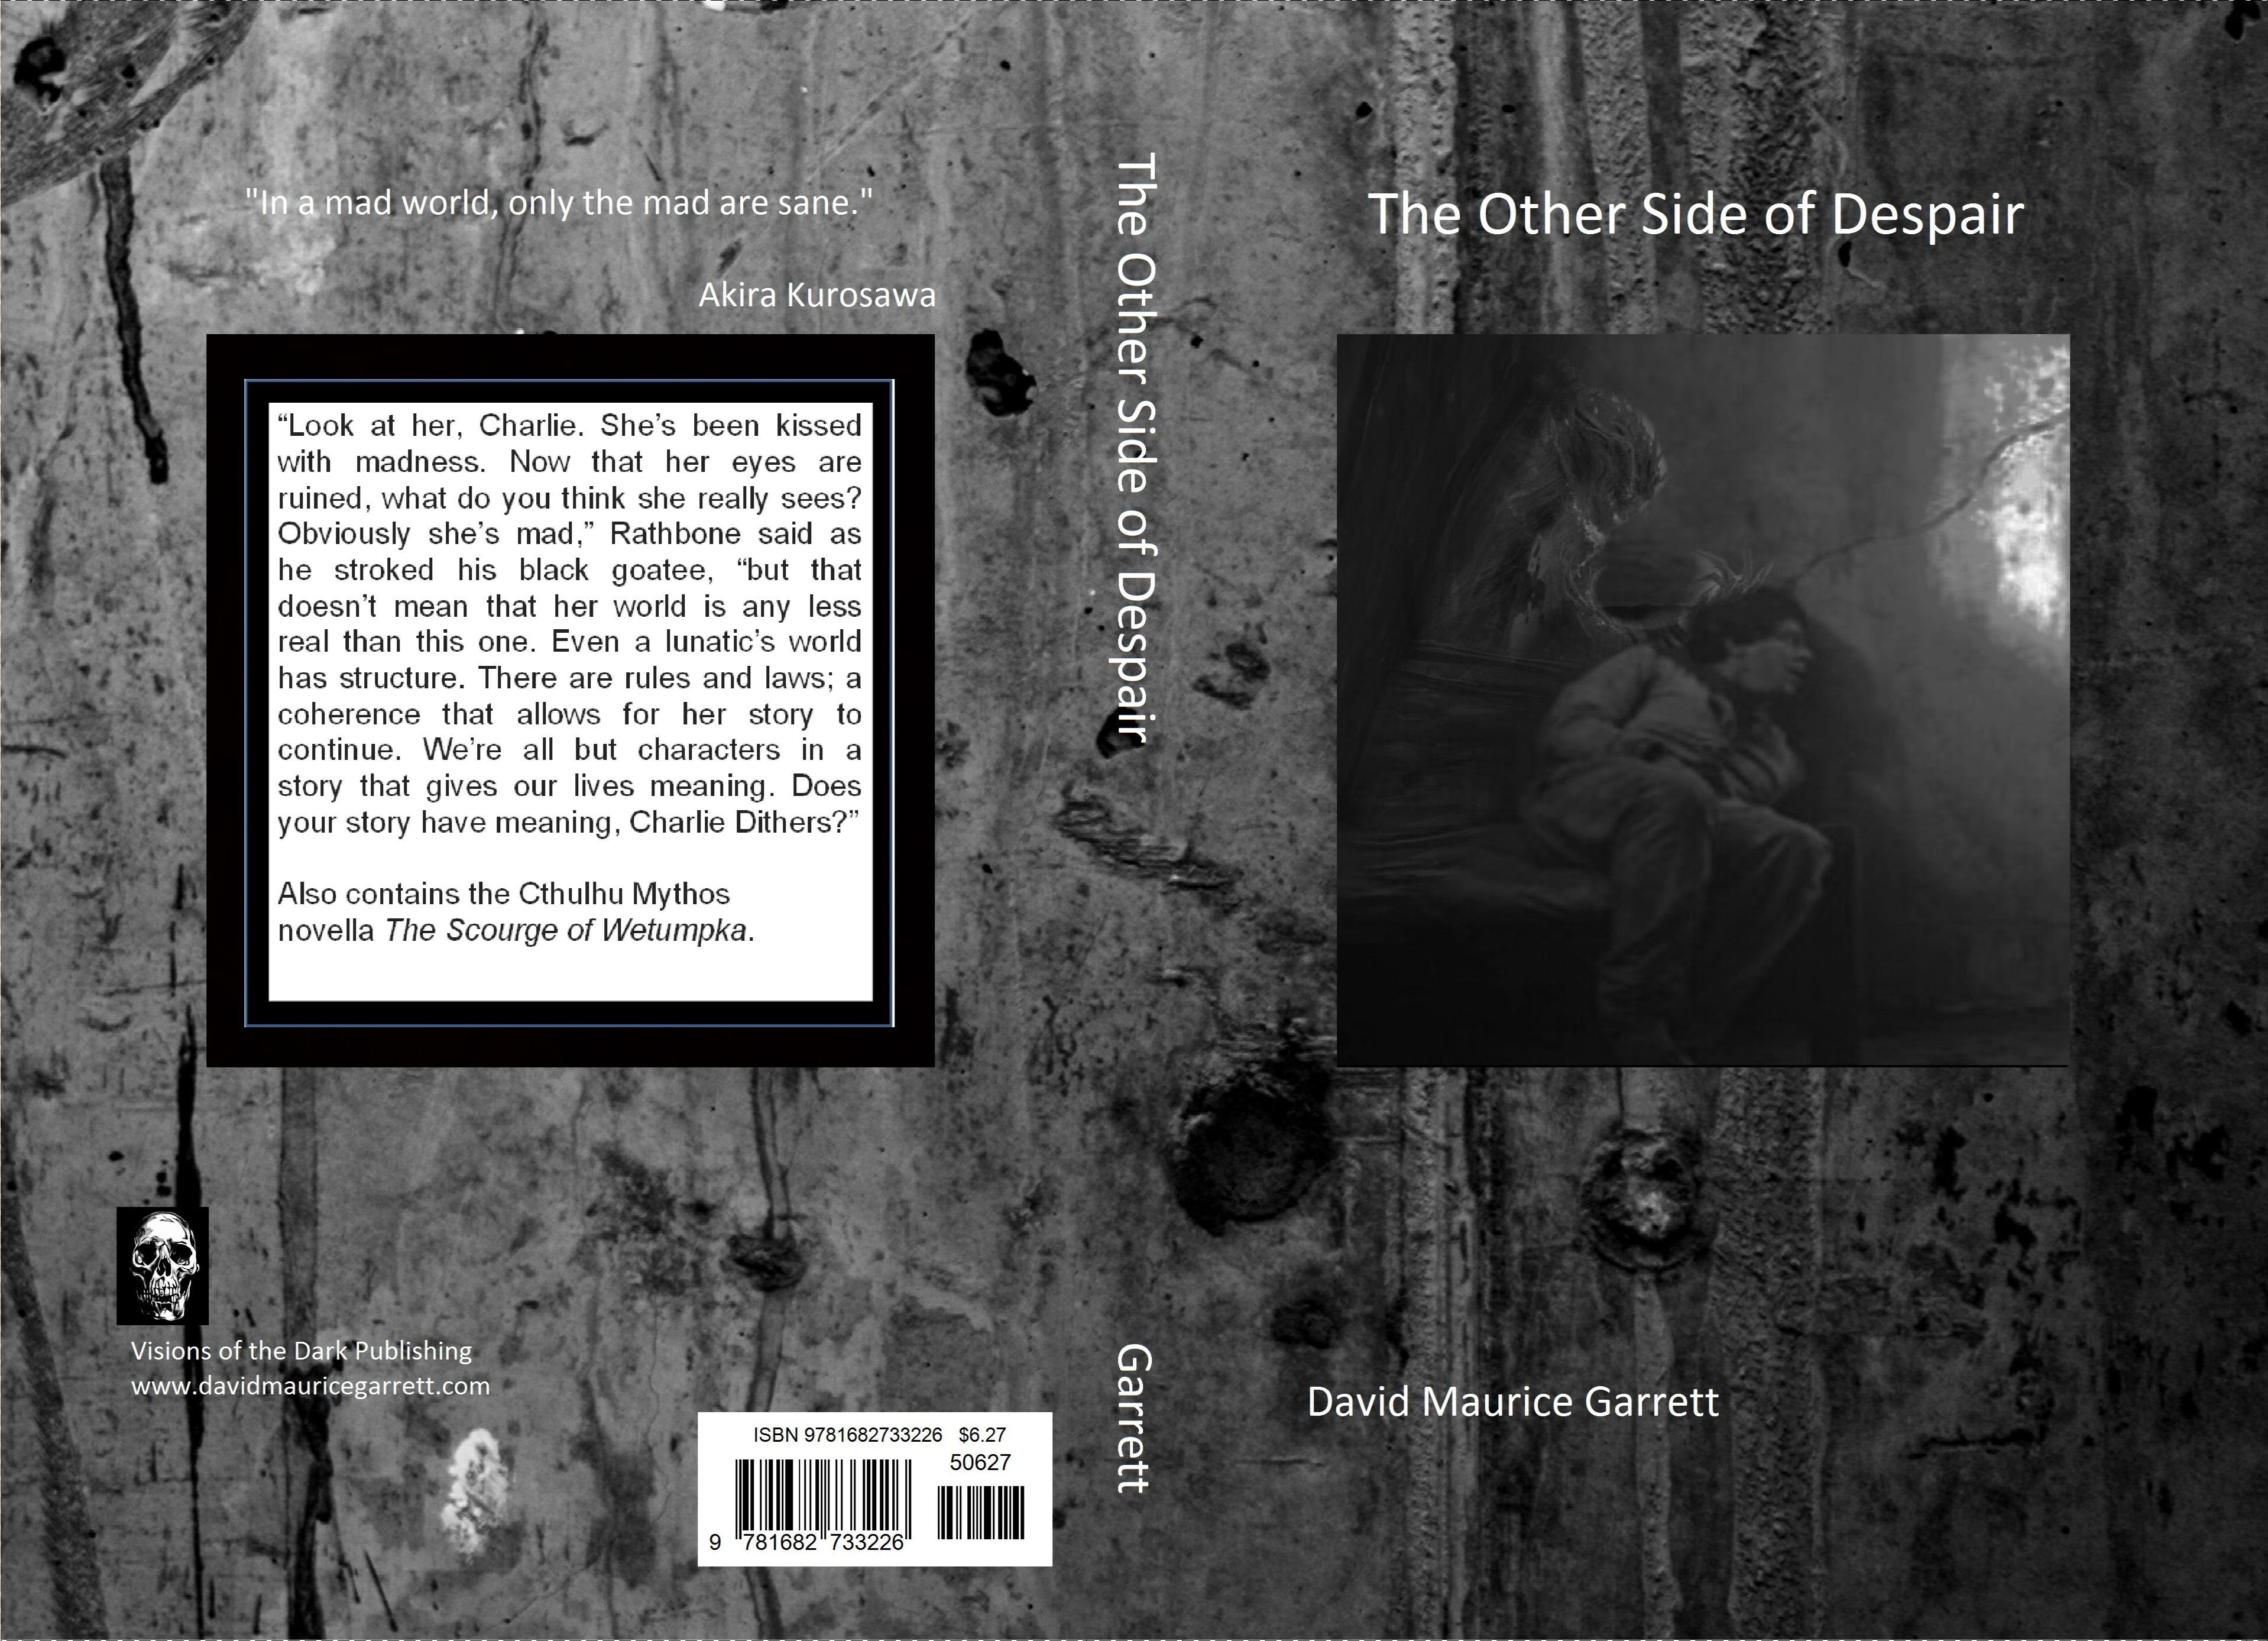 The Other Side of Despair cover image